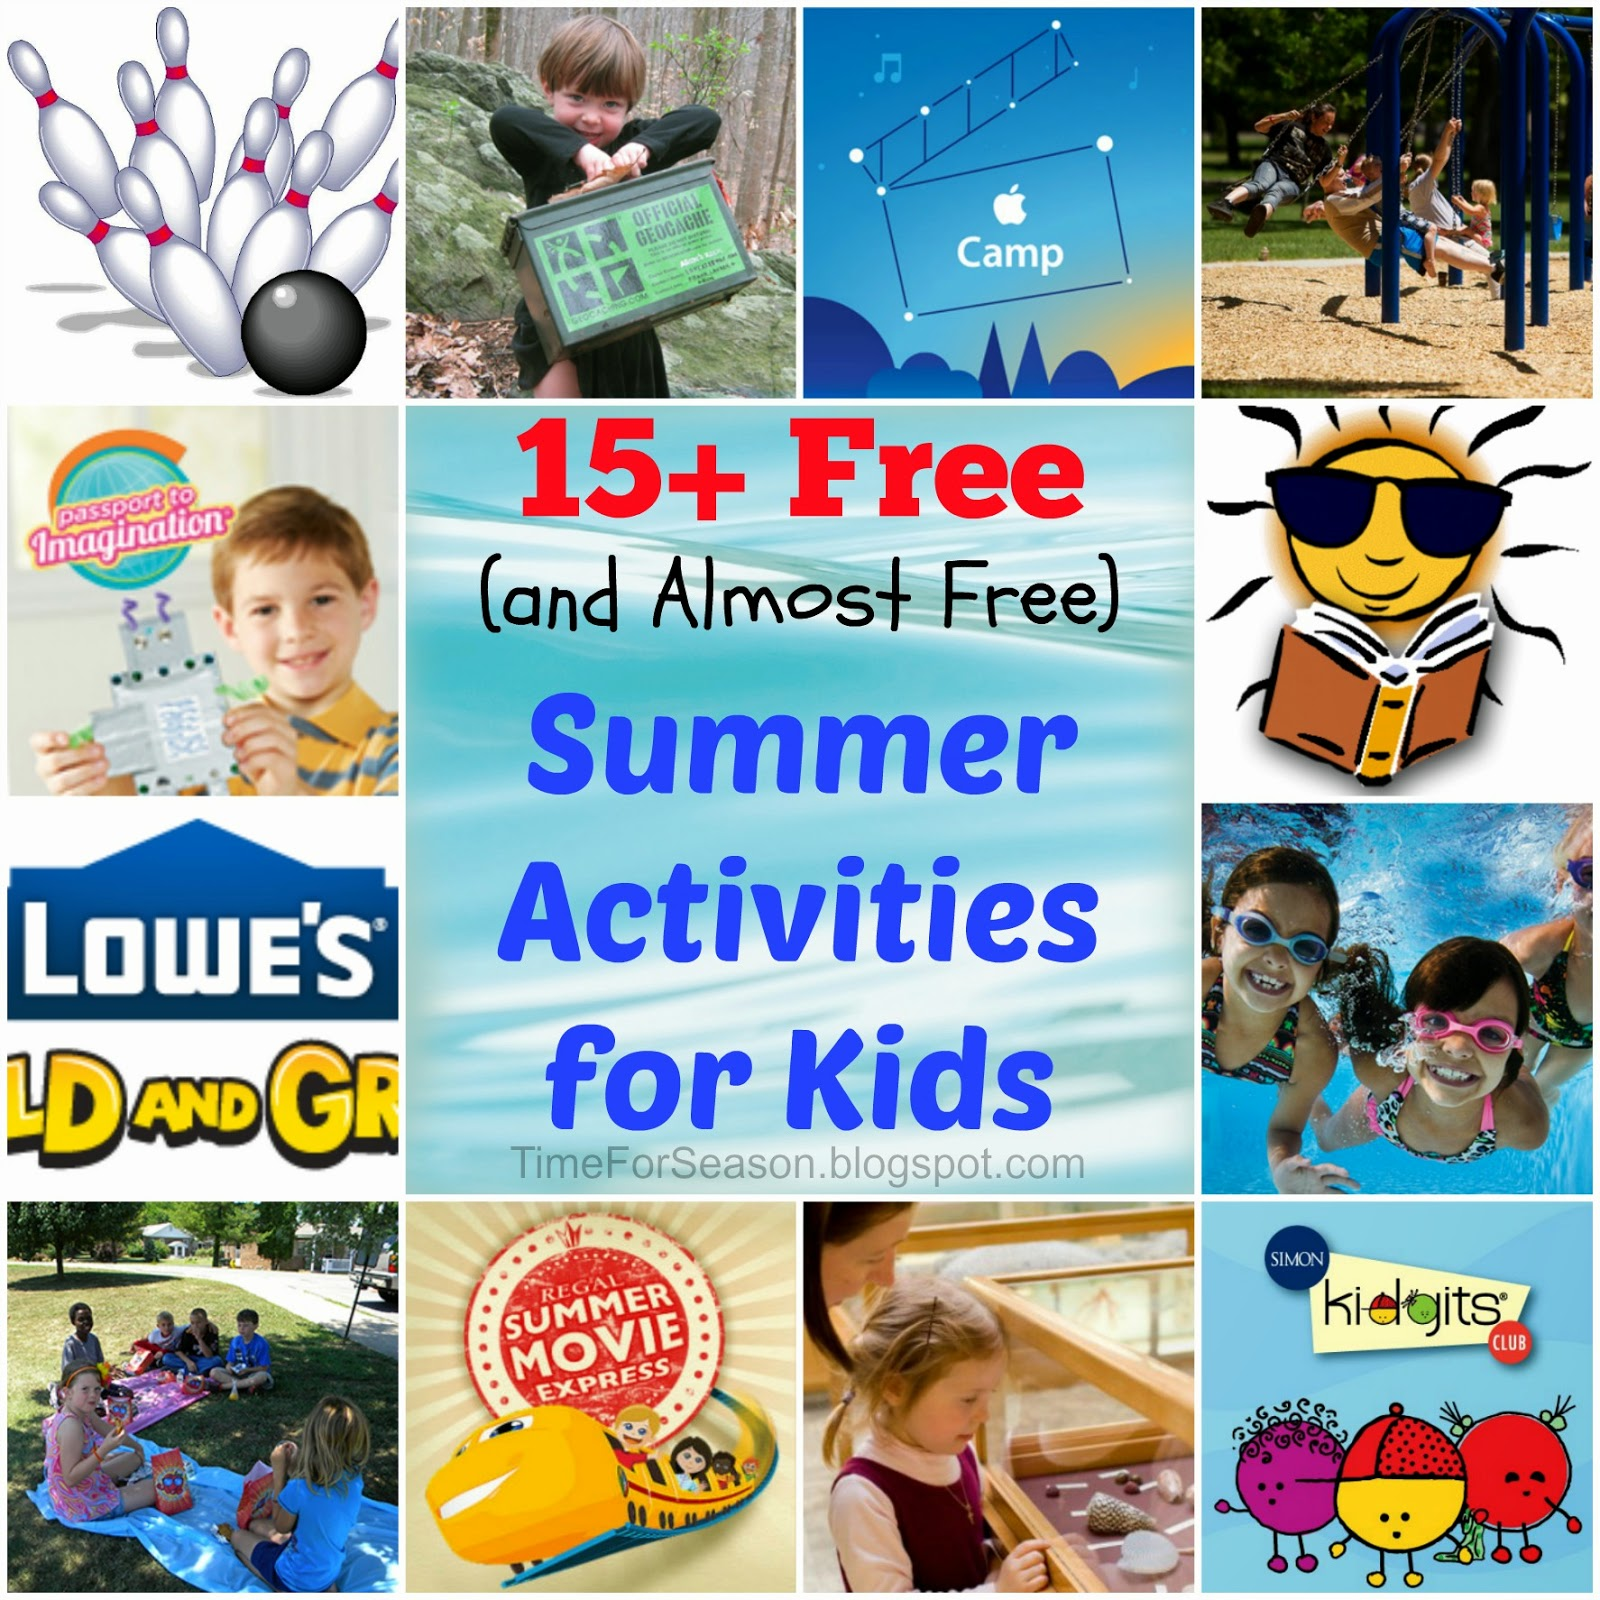 http://timeforseason.blogspot.com/2014/05/15-free-summer-kids-activities.html